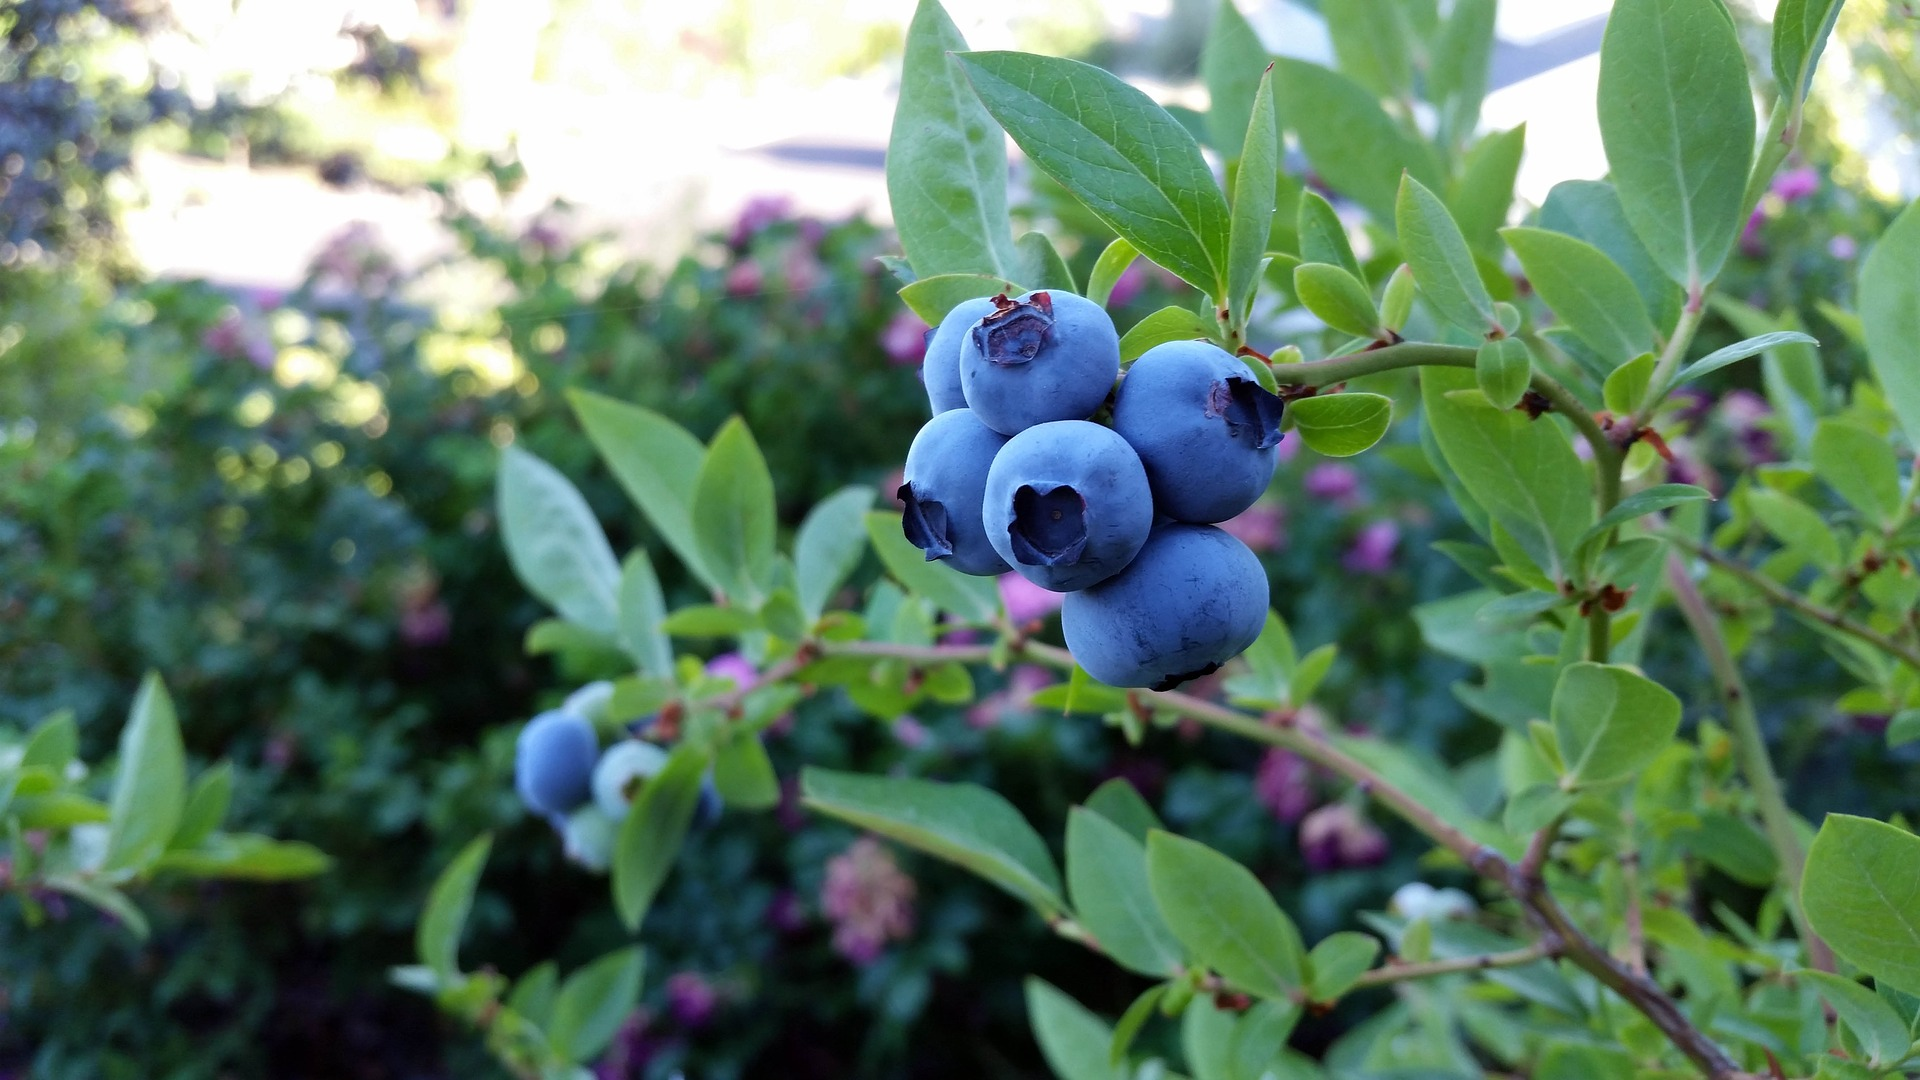 Blueberries uk grow guide